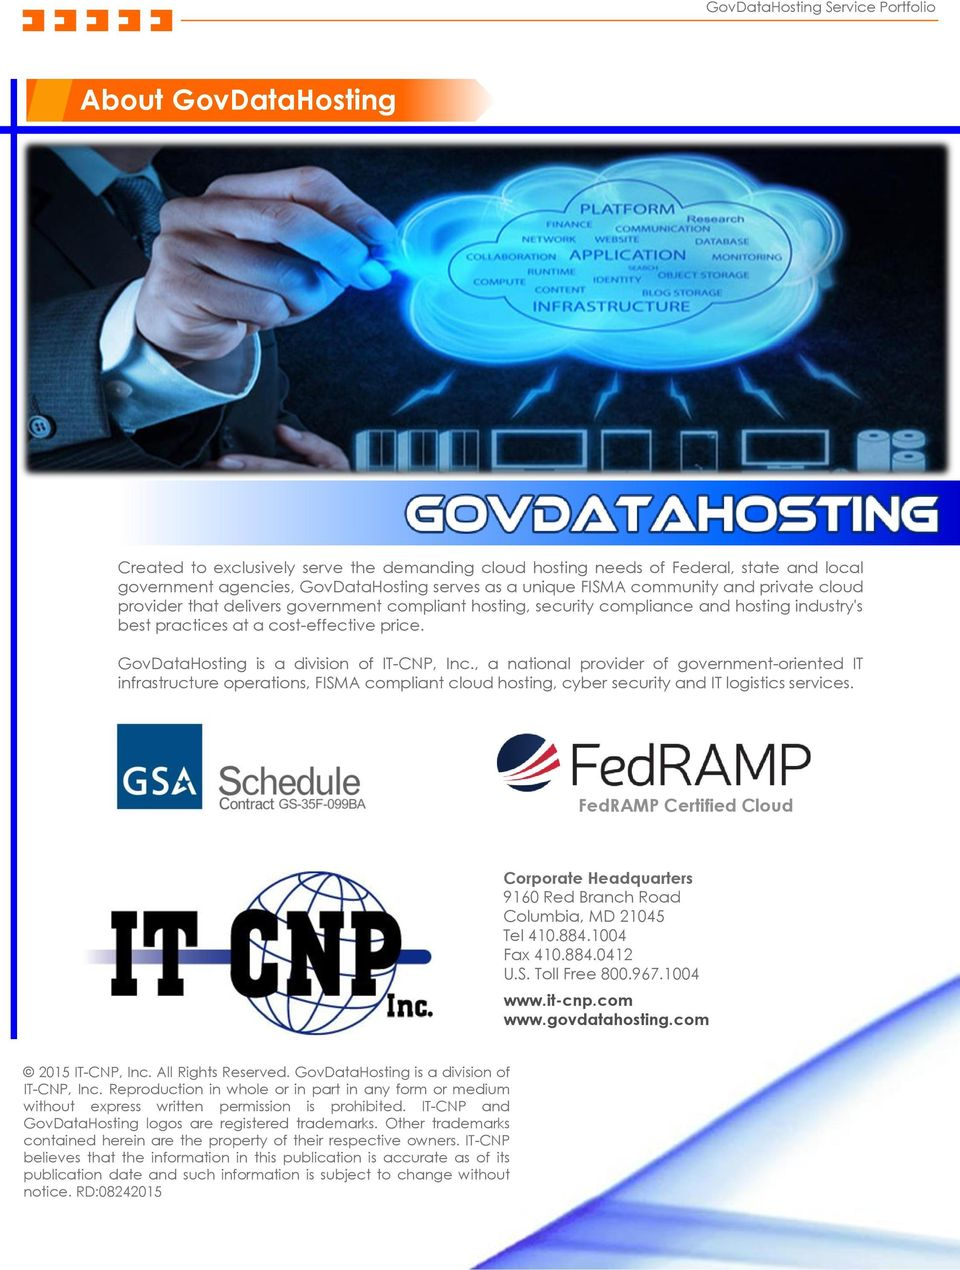 , a national provider of government-oriented IT infrastructure operations, FISMA compliant cloud hosting, cyber security and IT logistics services.